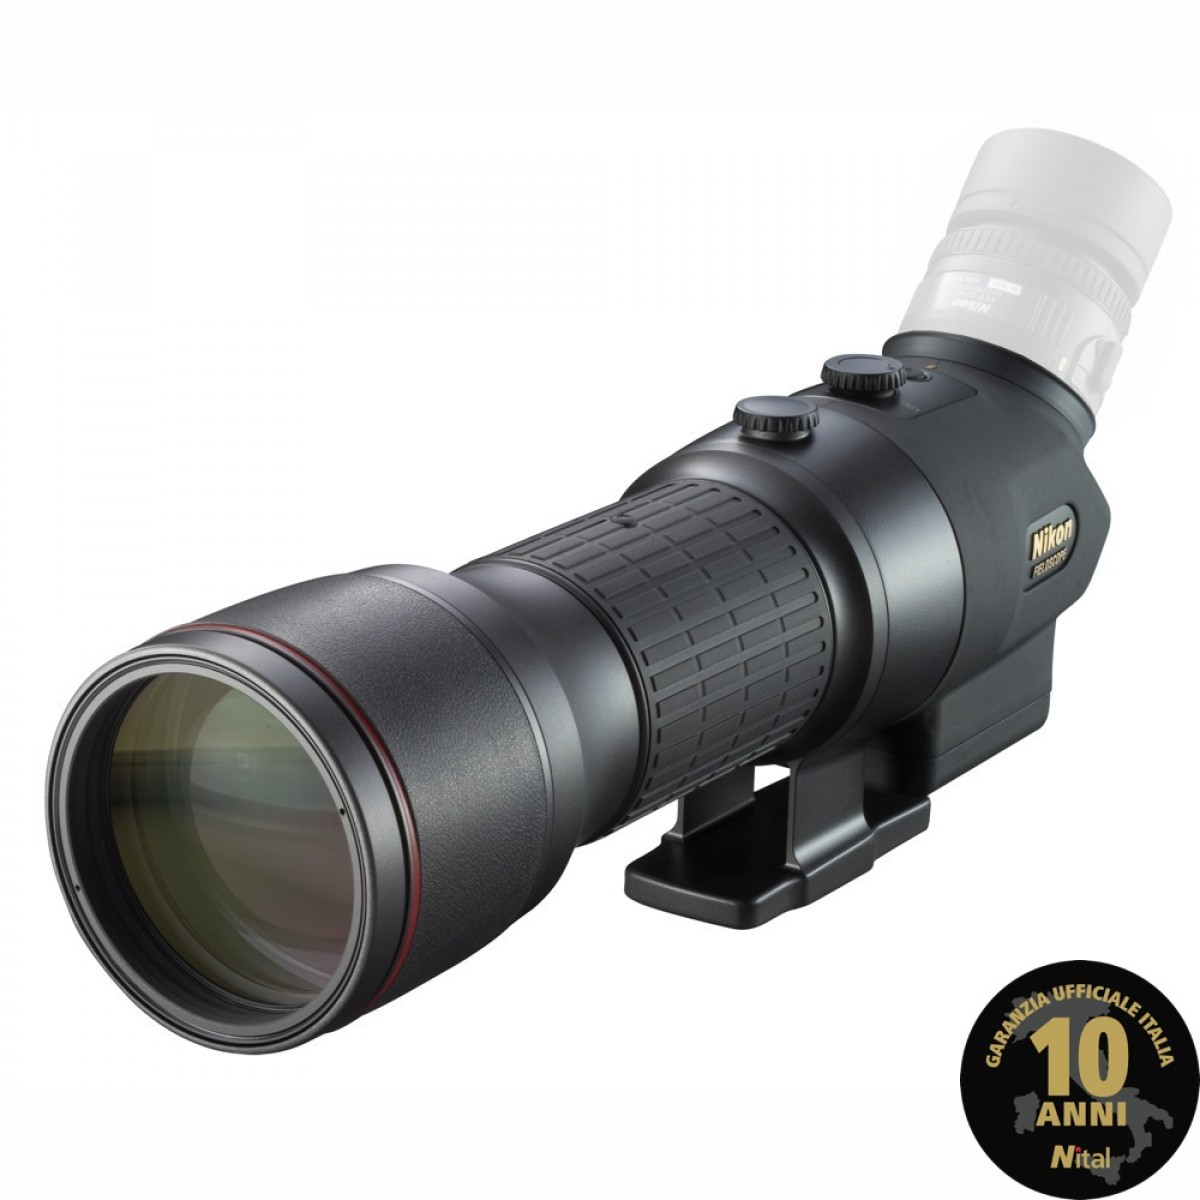 Field Scope EDG 85 corpo